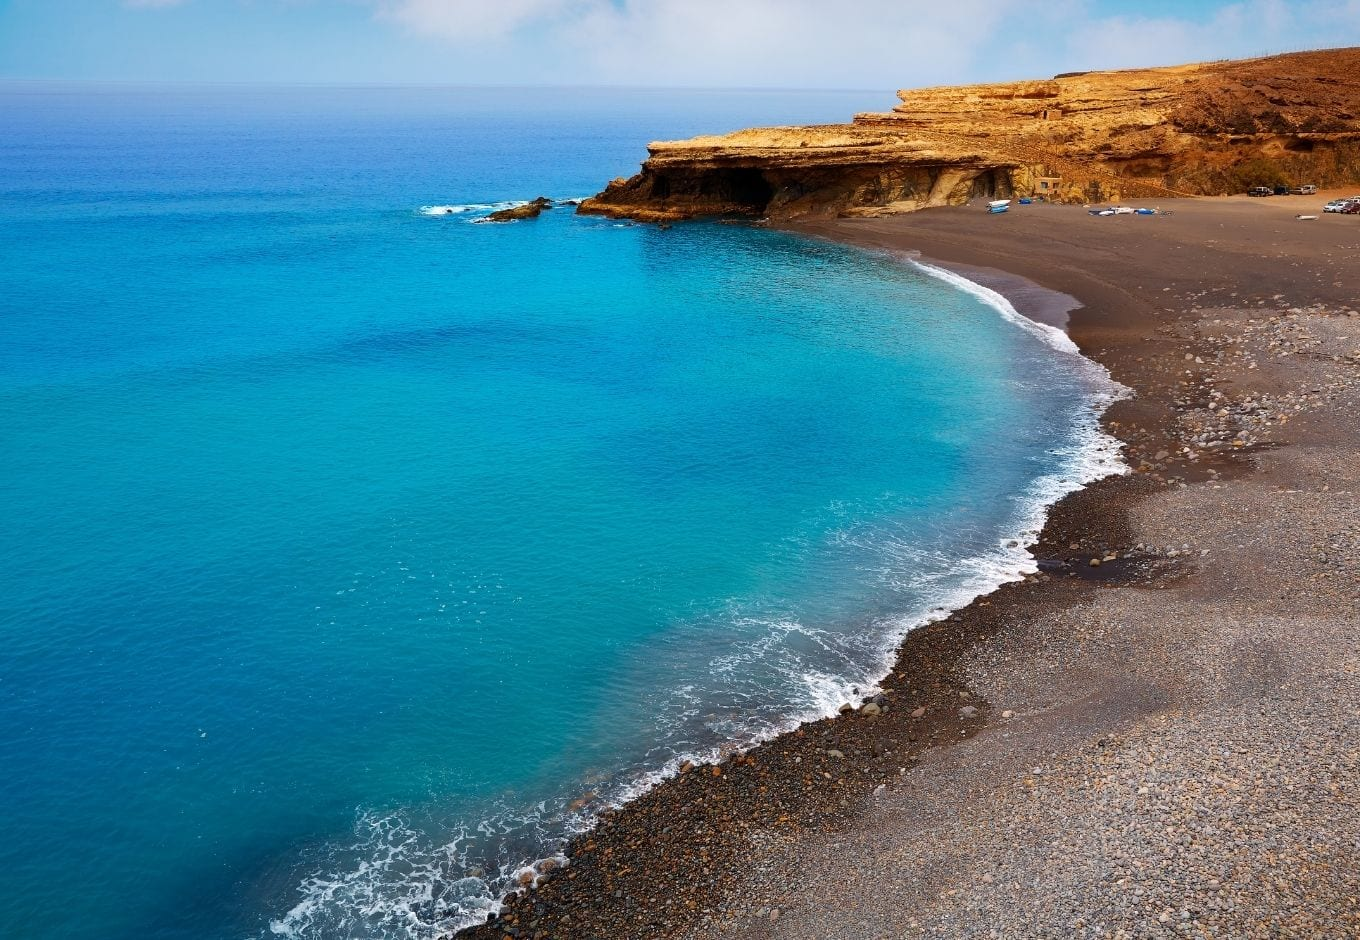 The turquoise-blue ocean in the Canary Islands, Spain.